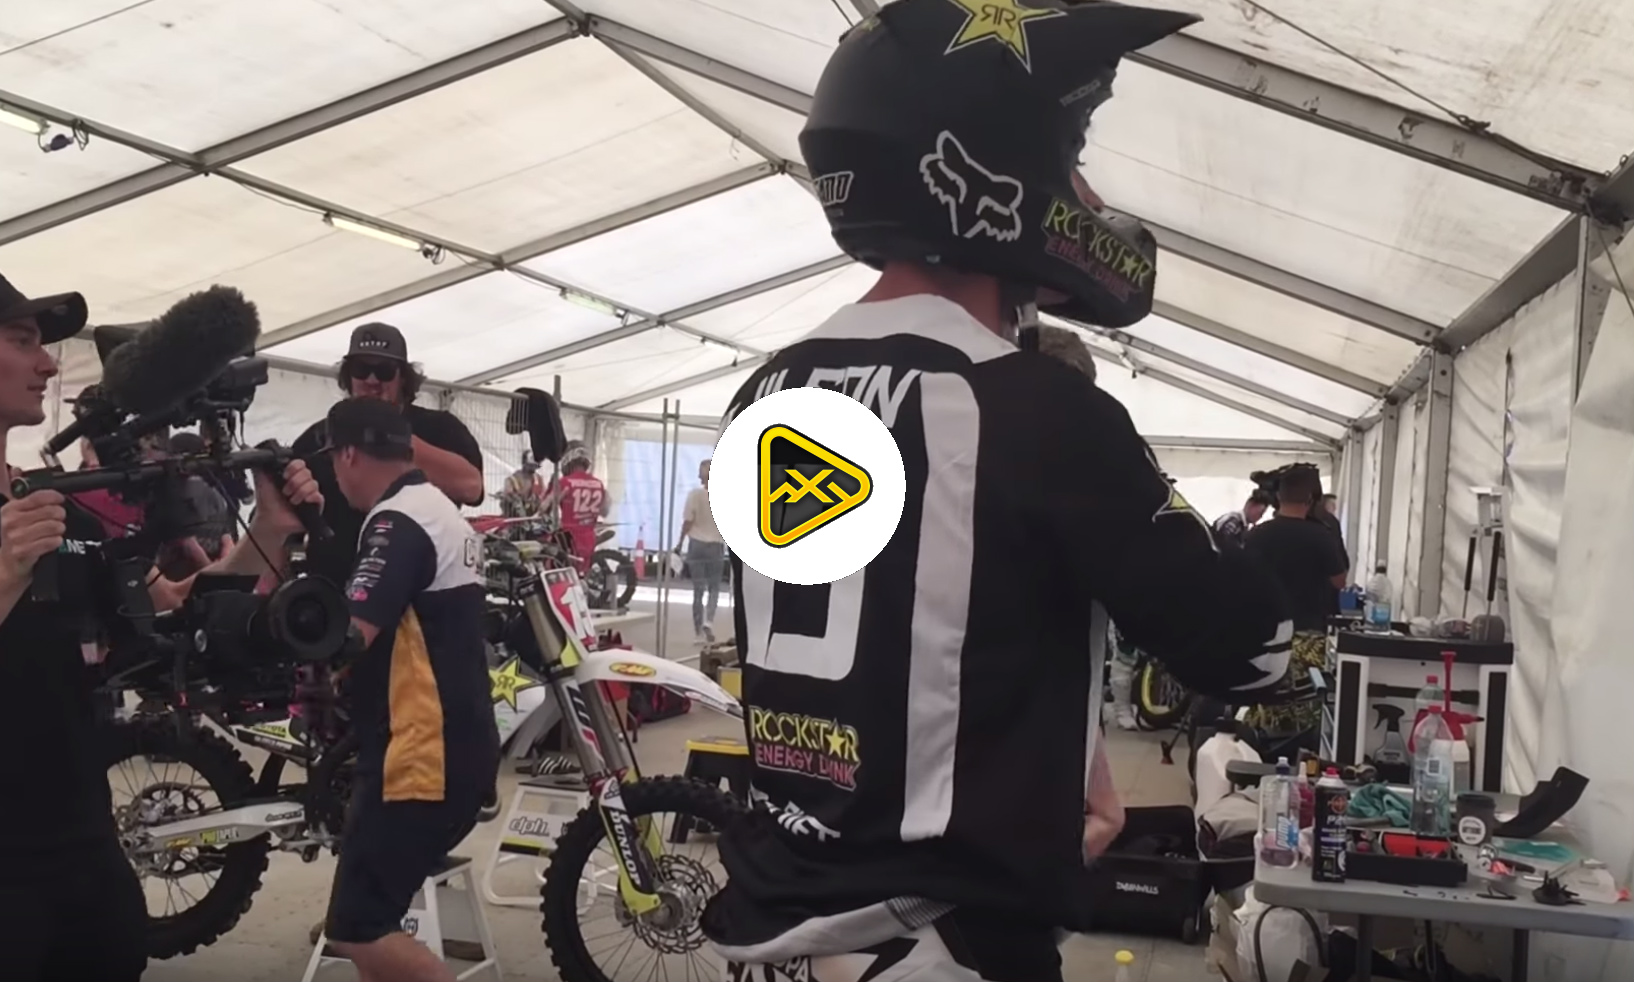 Behind the Scenes at Aukland SX with Dean Wilson